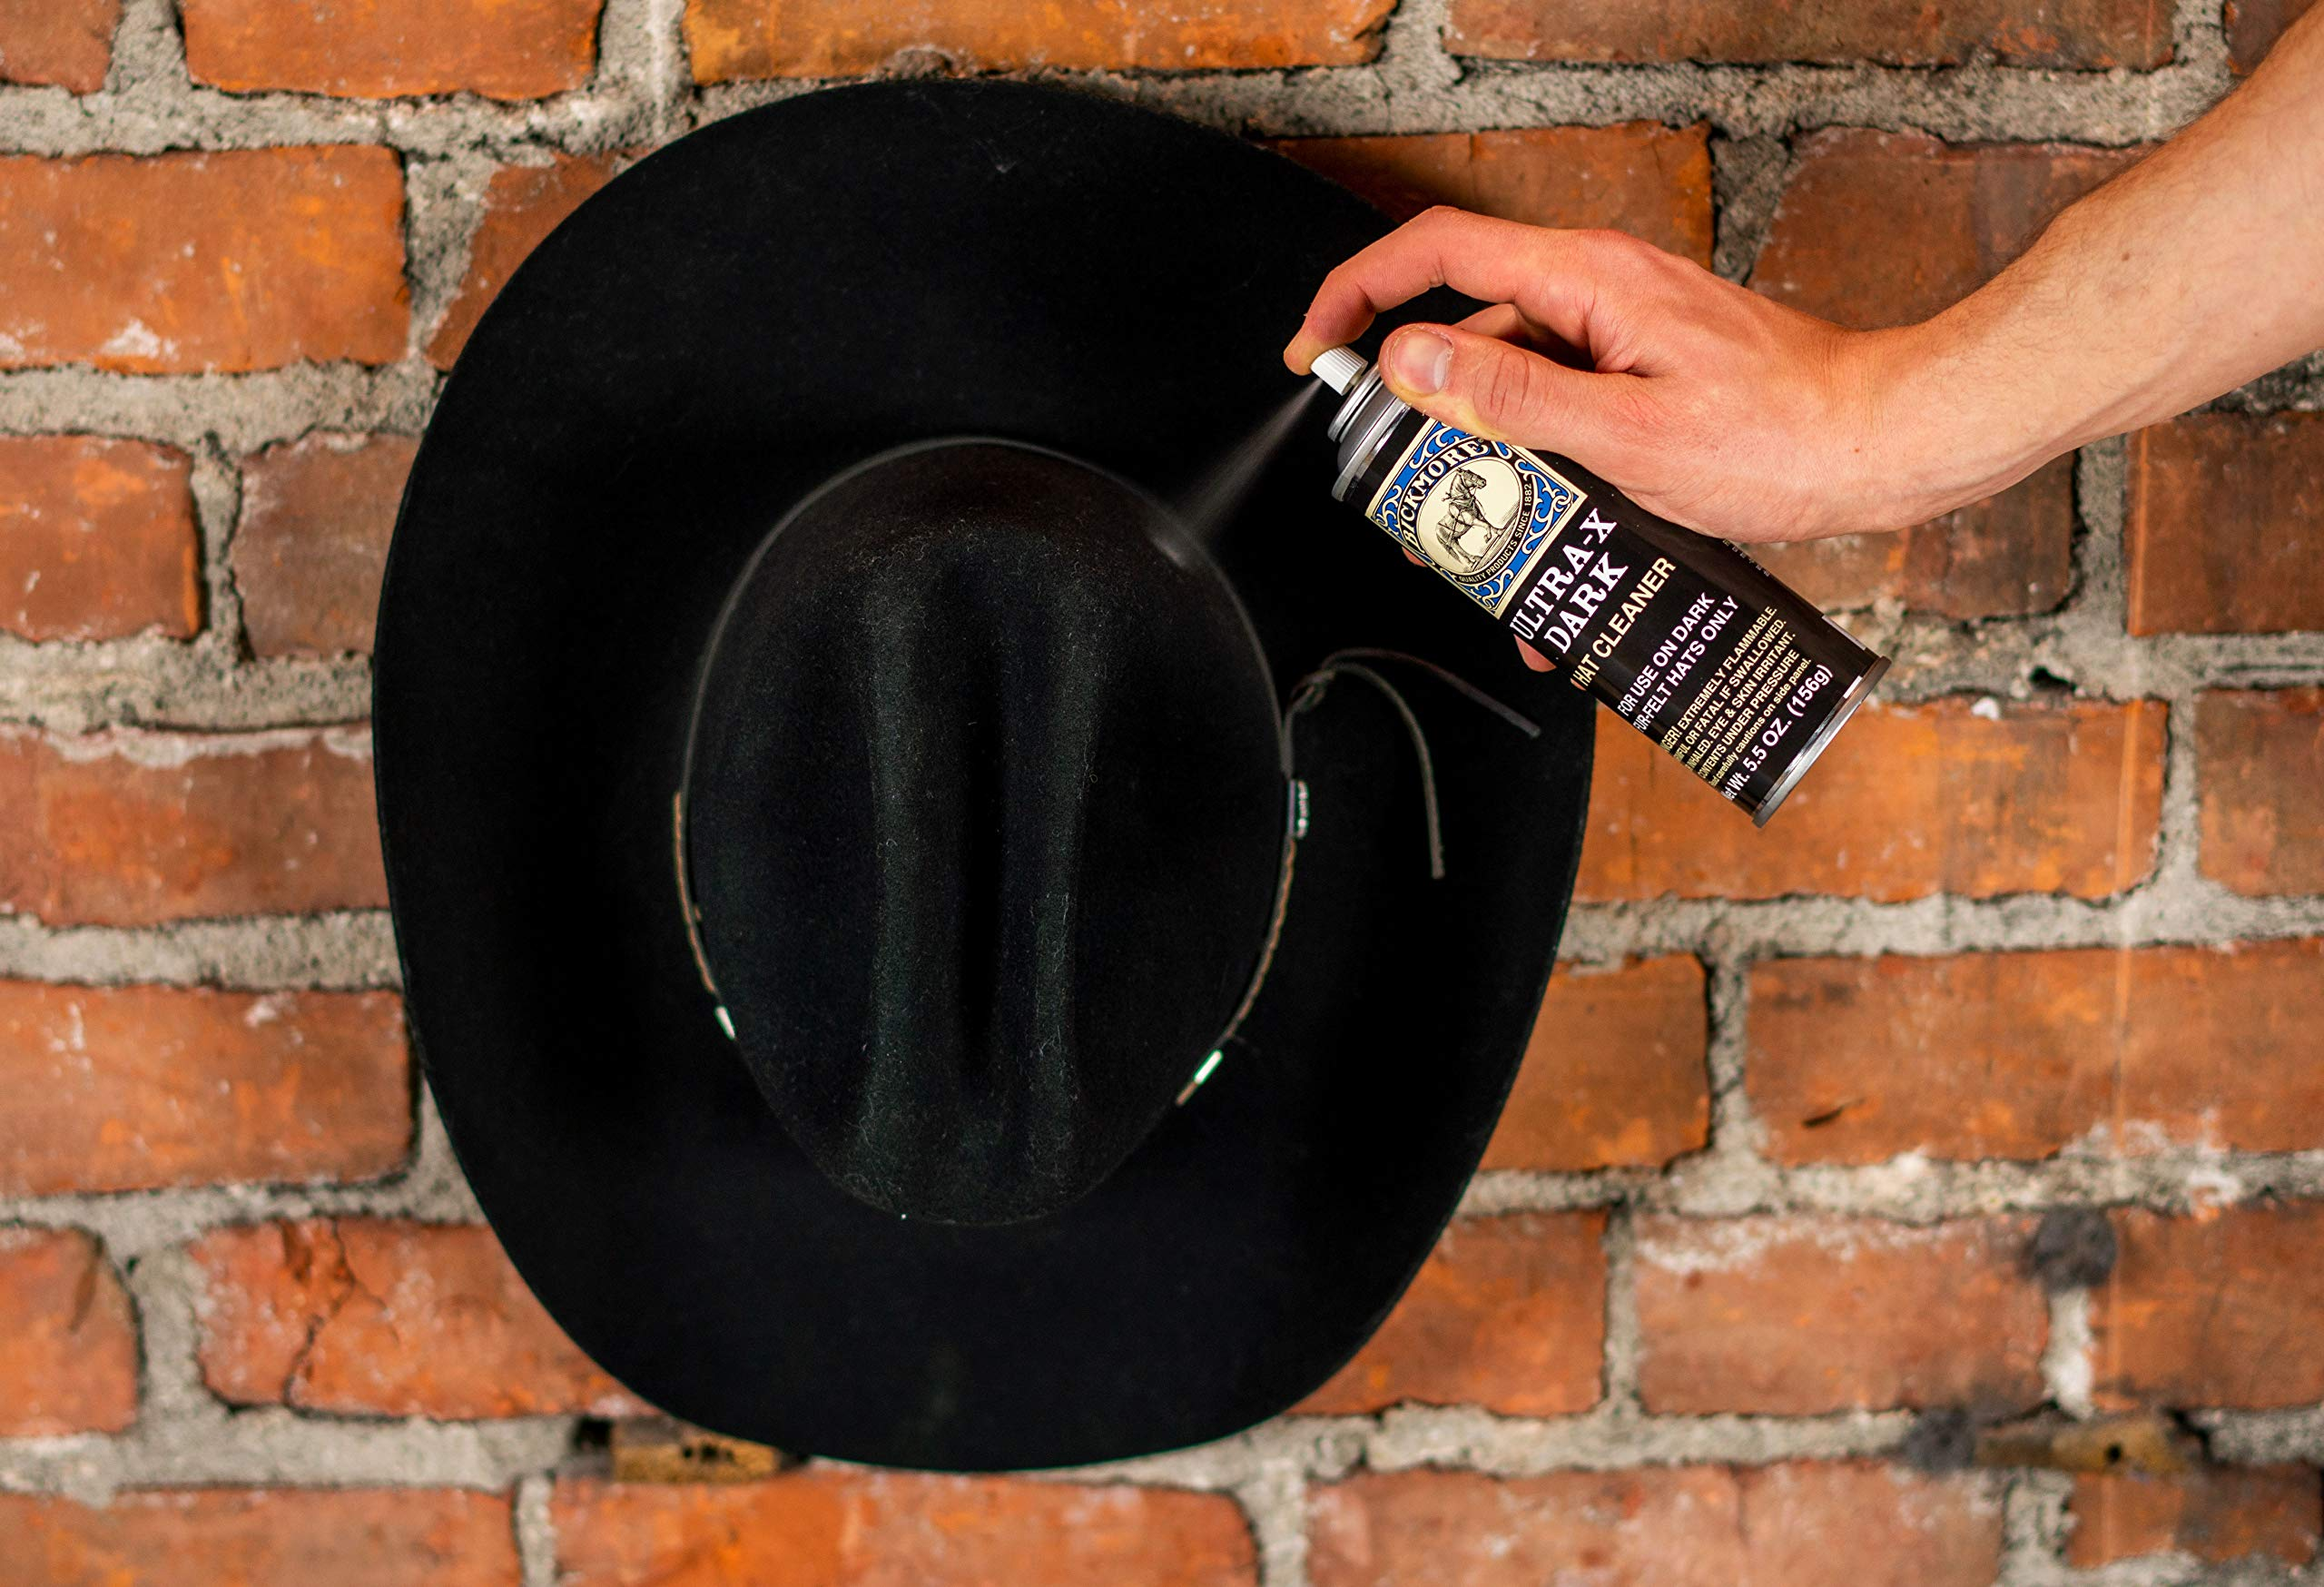 Bickmore Ultra-X Powdered Dark Hat Cleaner Kit - Remove Dirt, Dust, Fingerprints & Sweat Stains - Great for Fur - Felt Cowboy Hats, Baseball Hats, Fedoras, Sun Hats & More by Bickmore (Image #6)